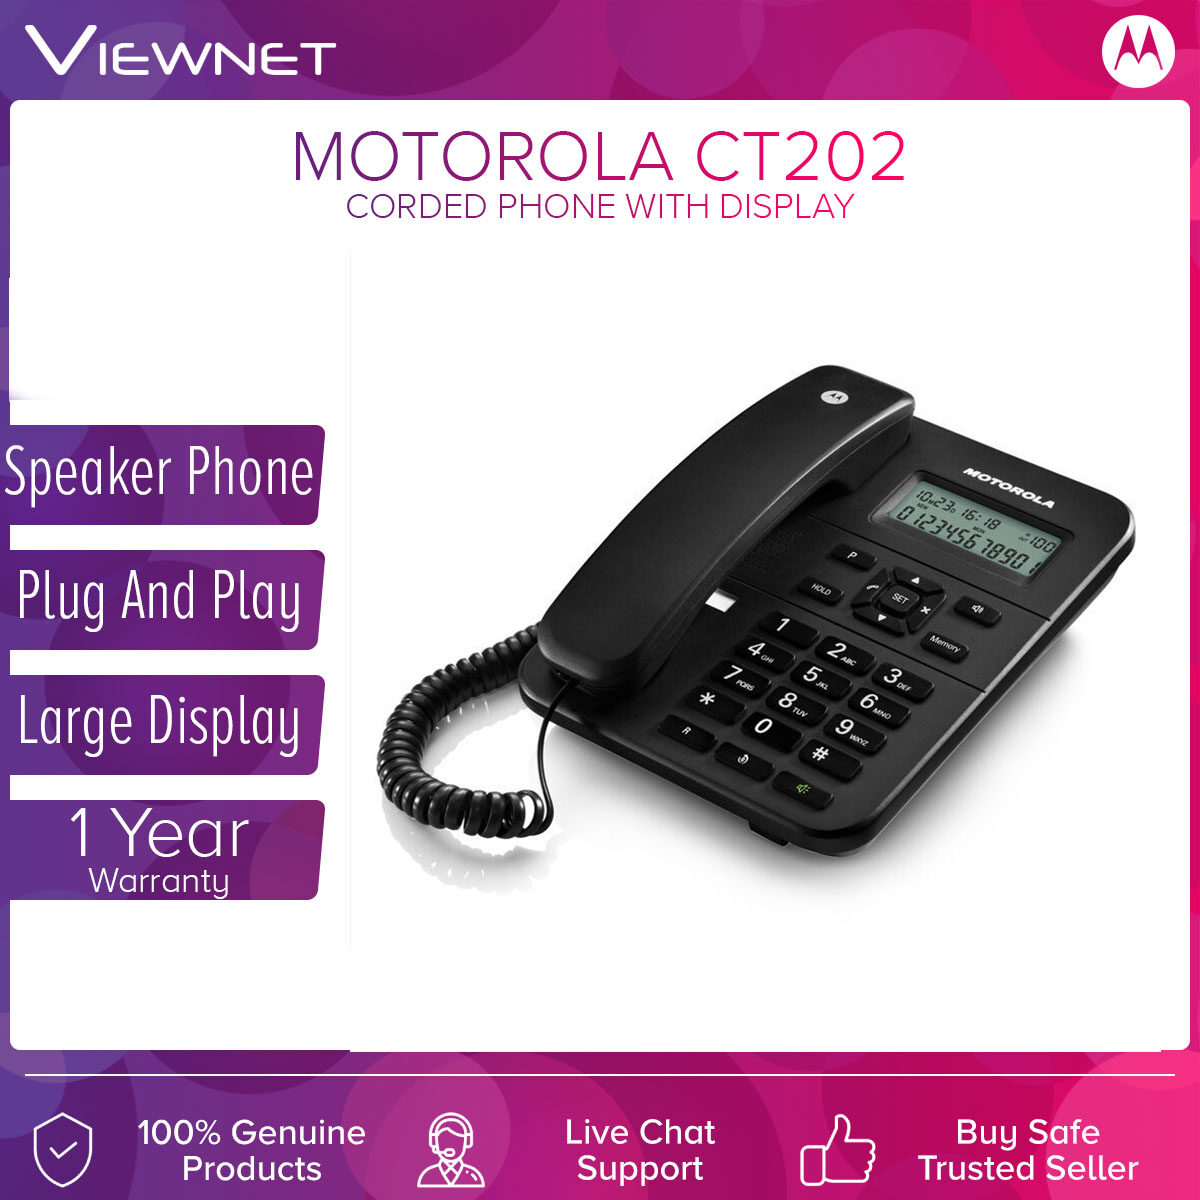 Motorola Corderd Phone CT202 Speaker Phone & Black and White LCD Display with Caller ID, Last Number Redial Memory , Alarm Facility